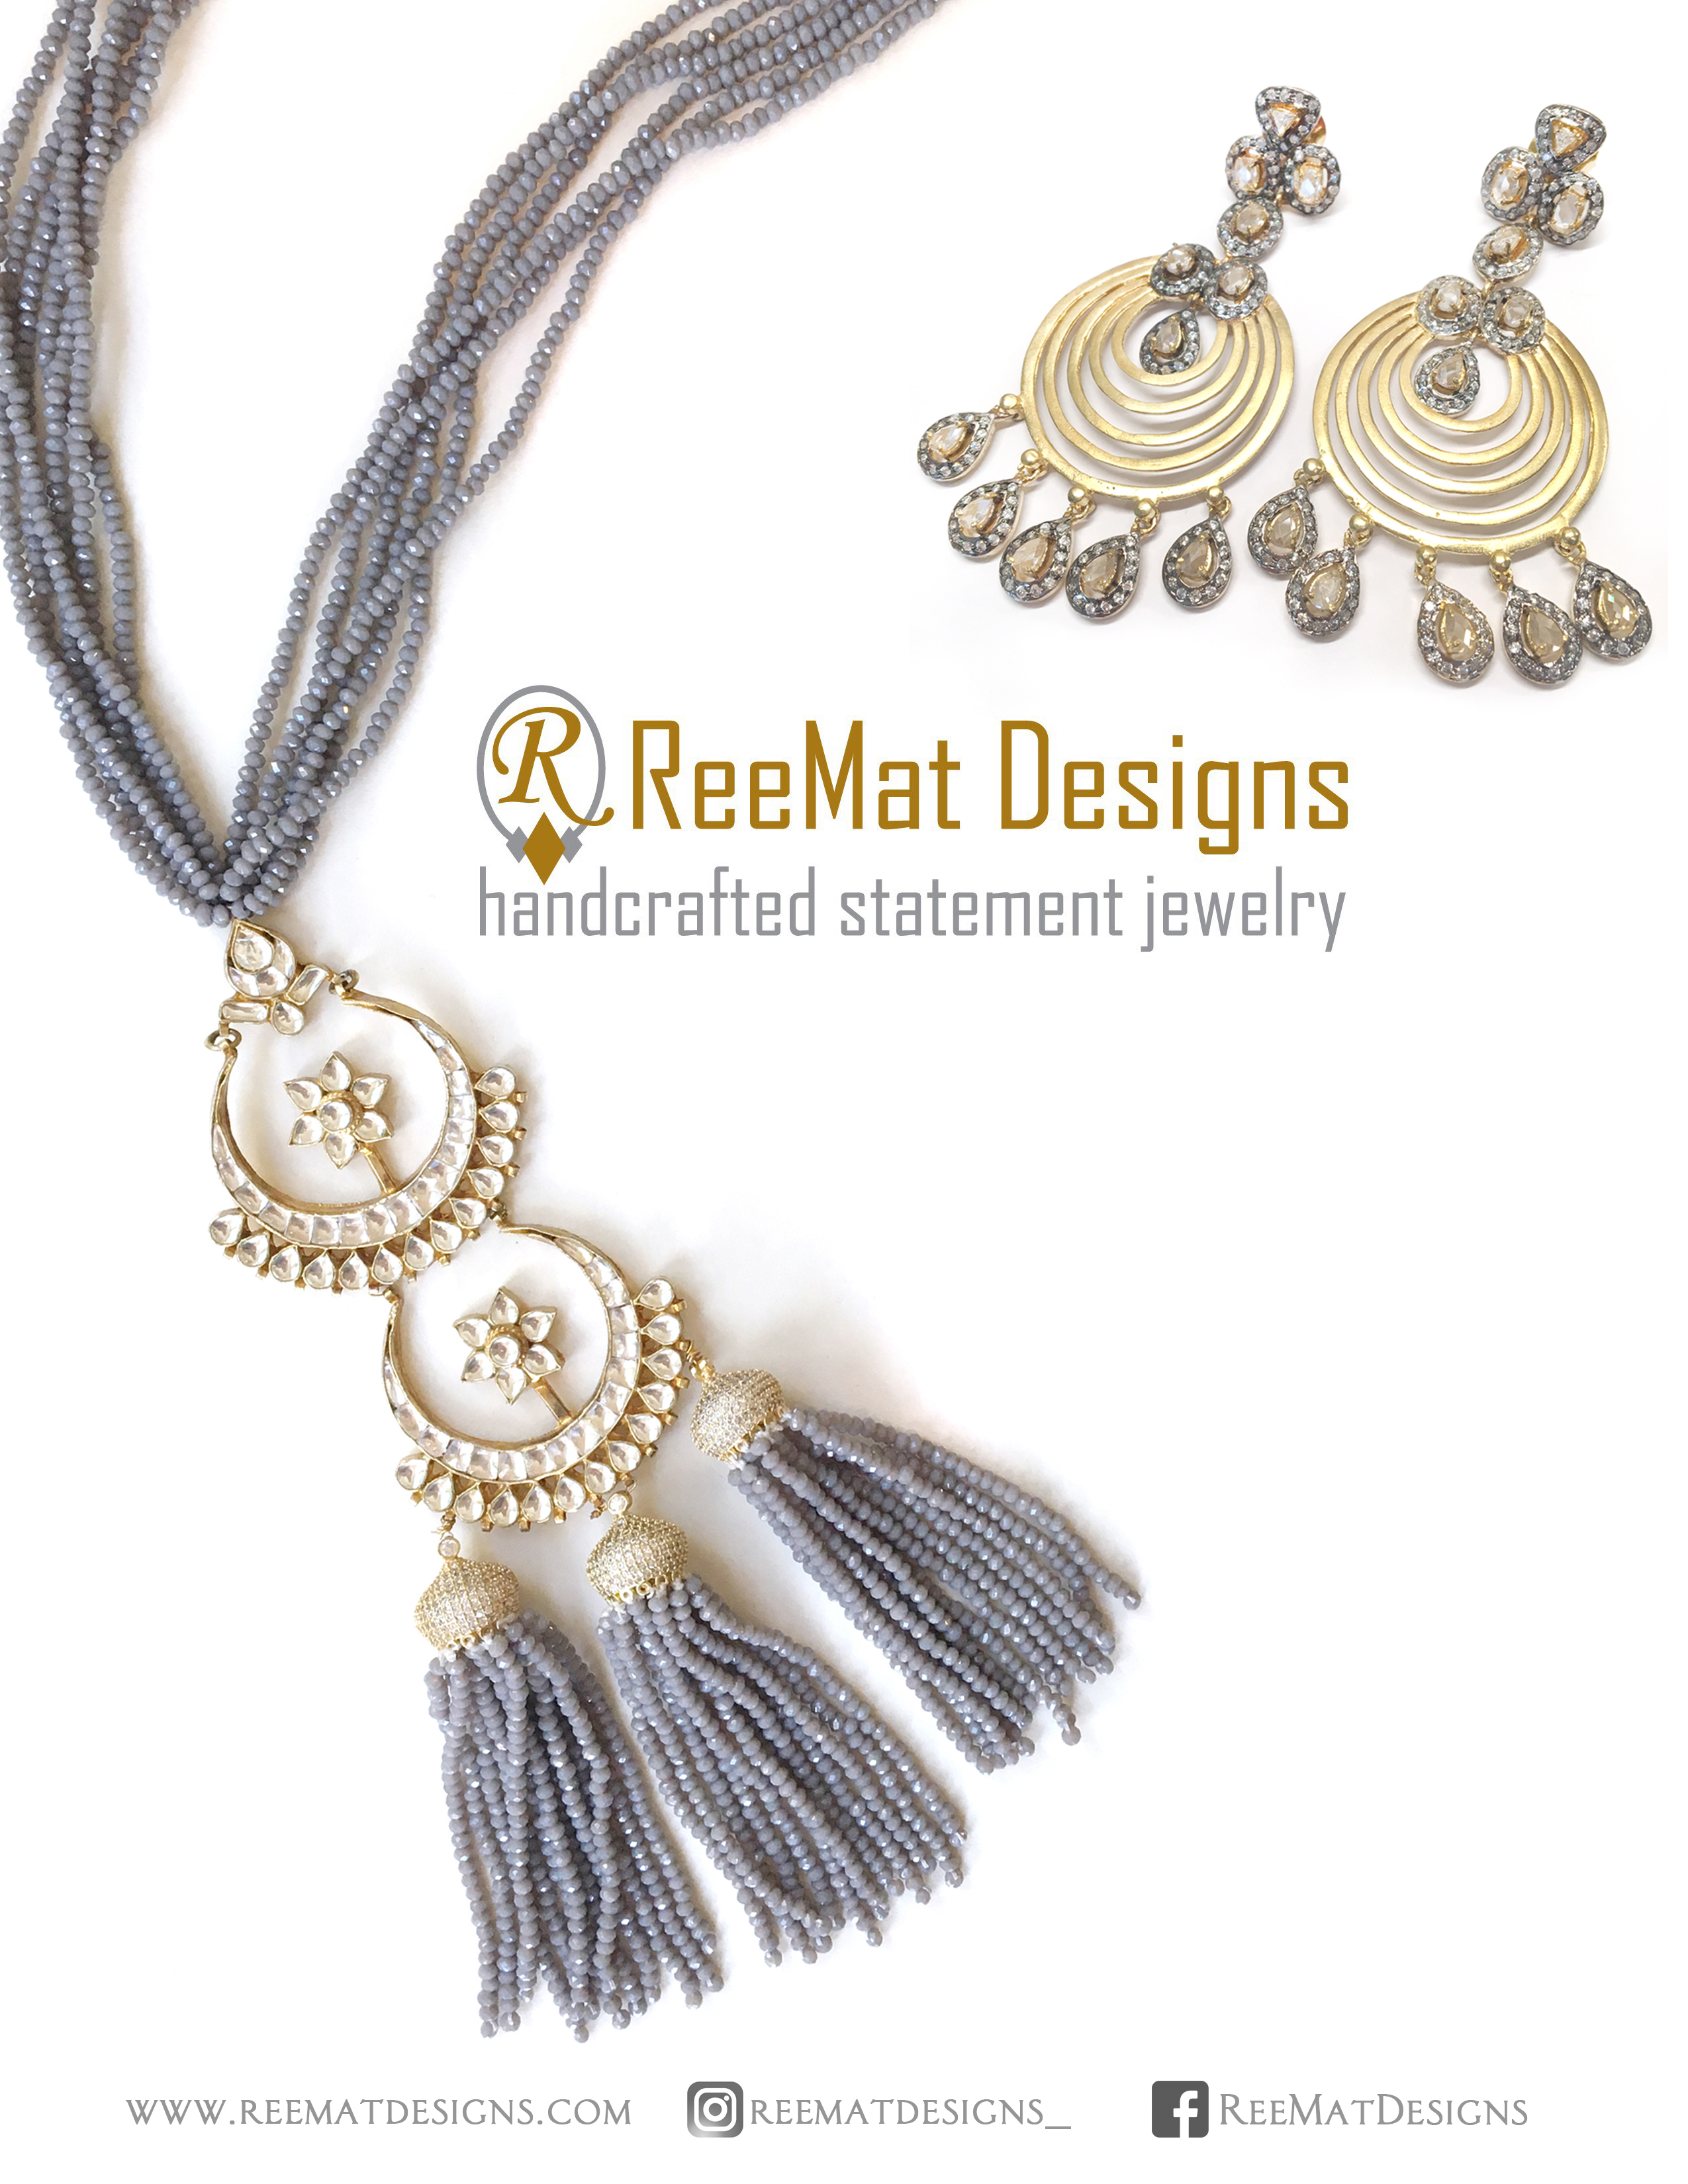 ReeMat Designs Catalog Page 10